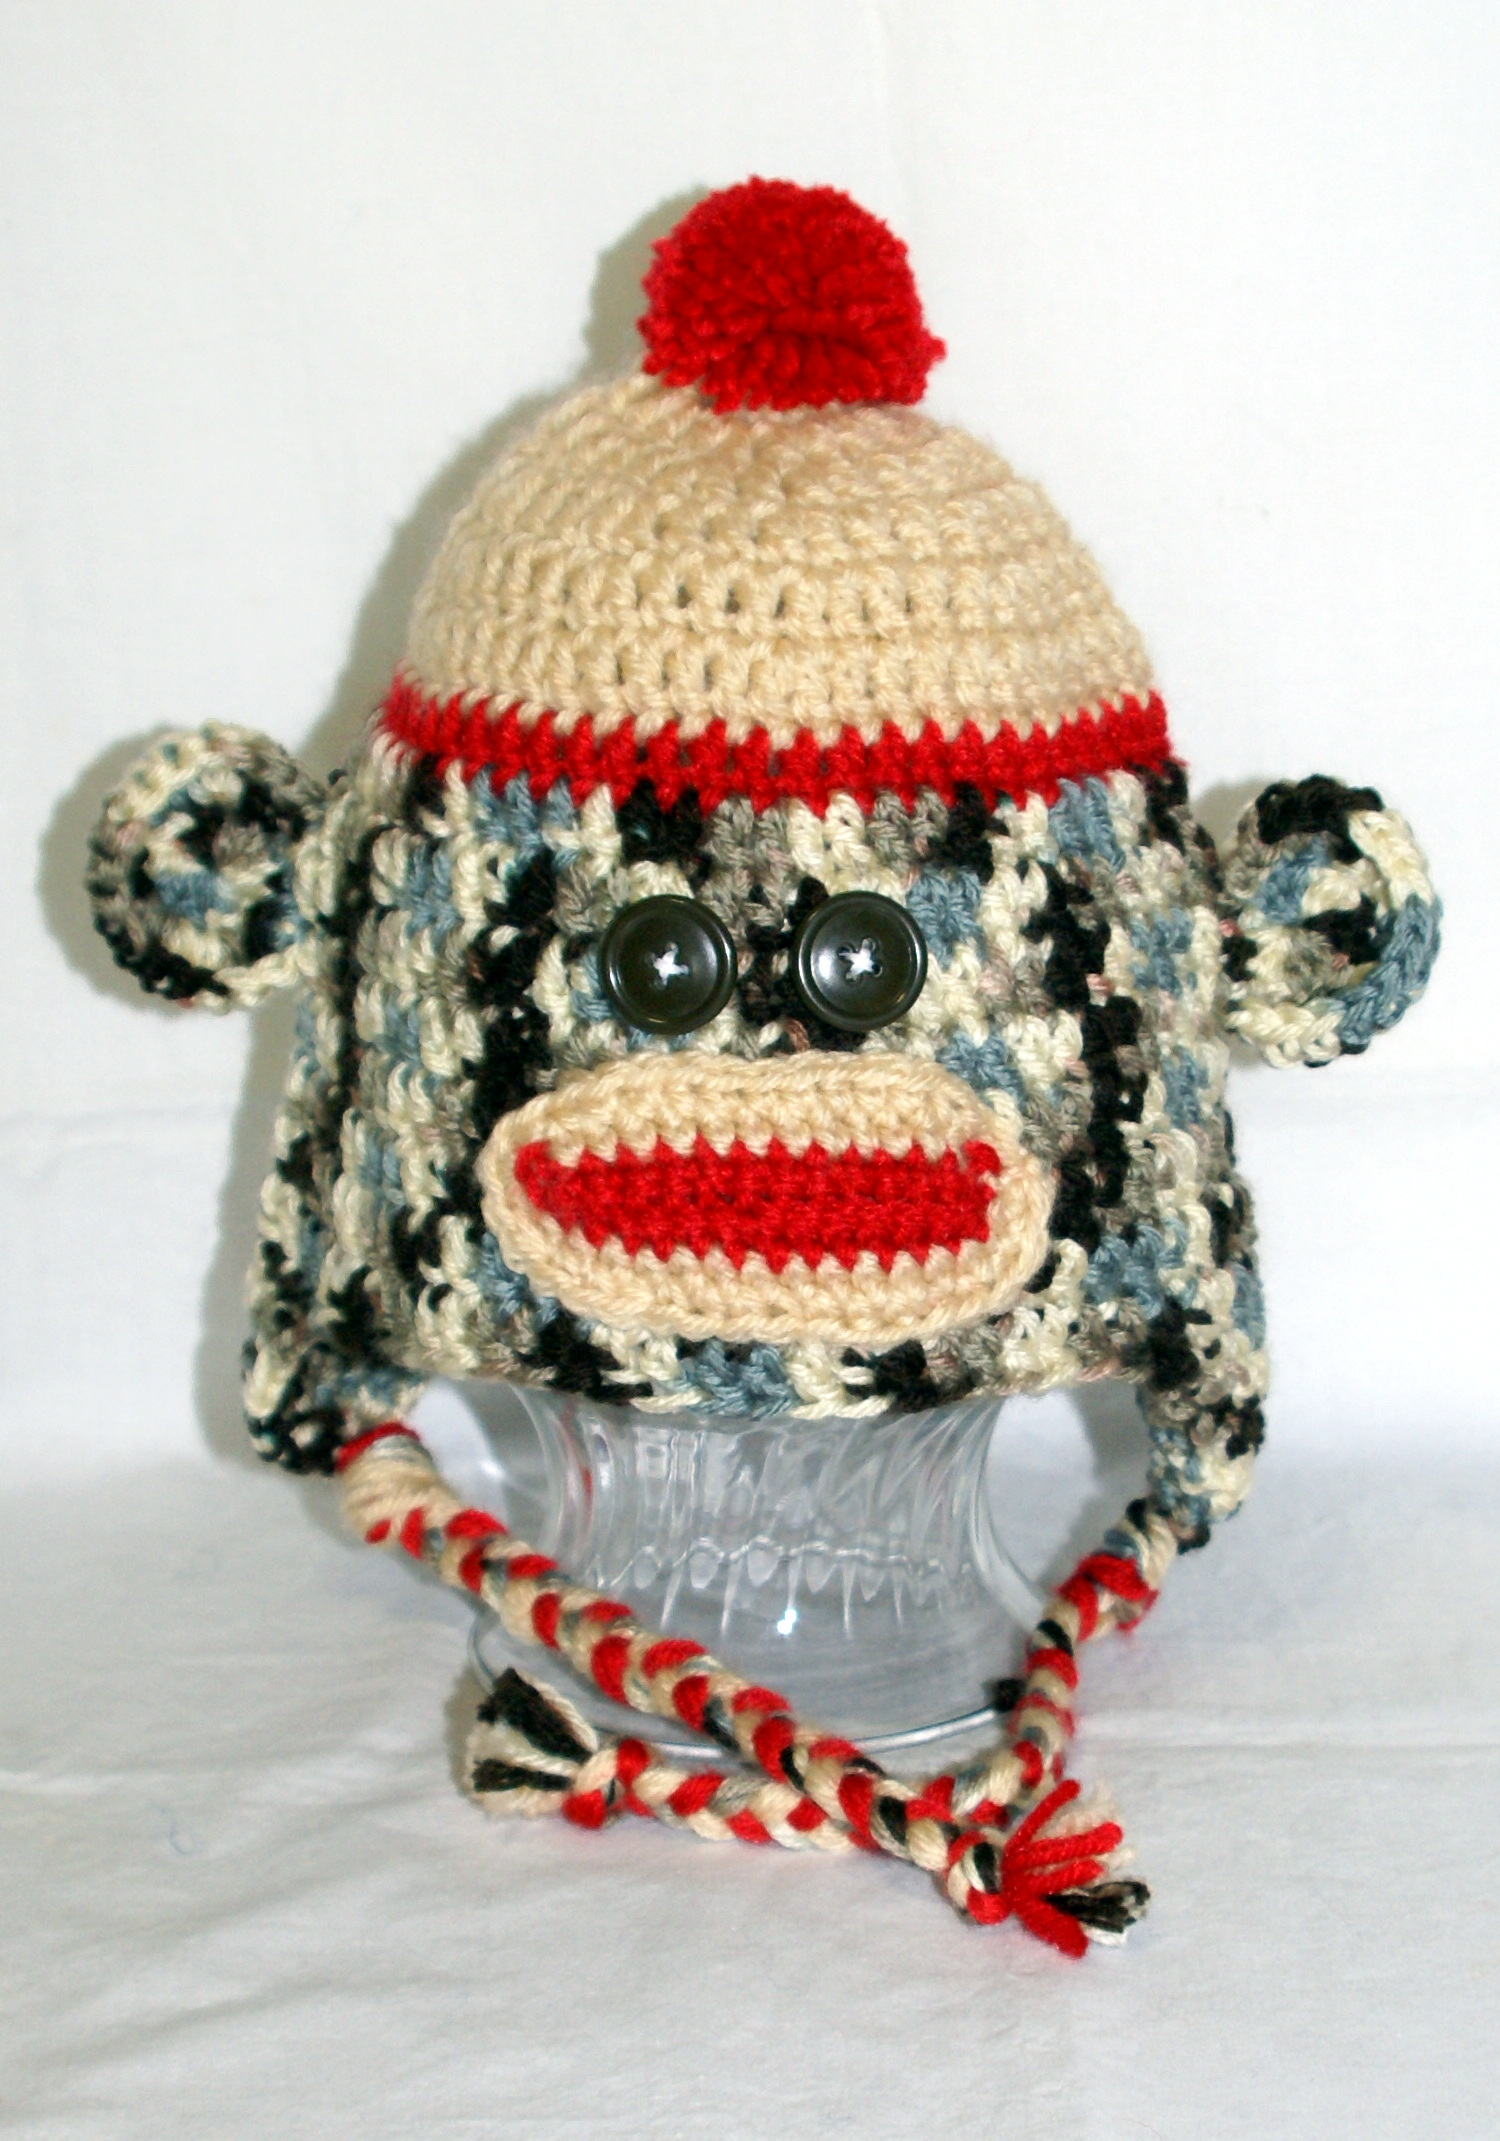 http://kiserkrafts.storenvy.com/collections/270972-featured/products/3038199-monkey-me-hat